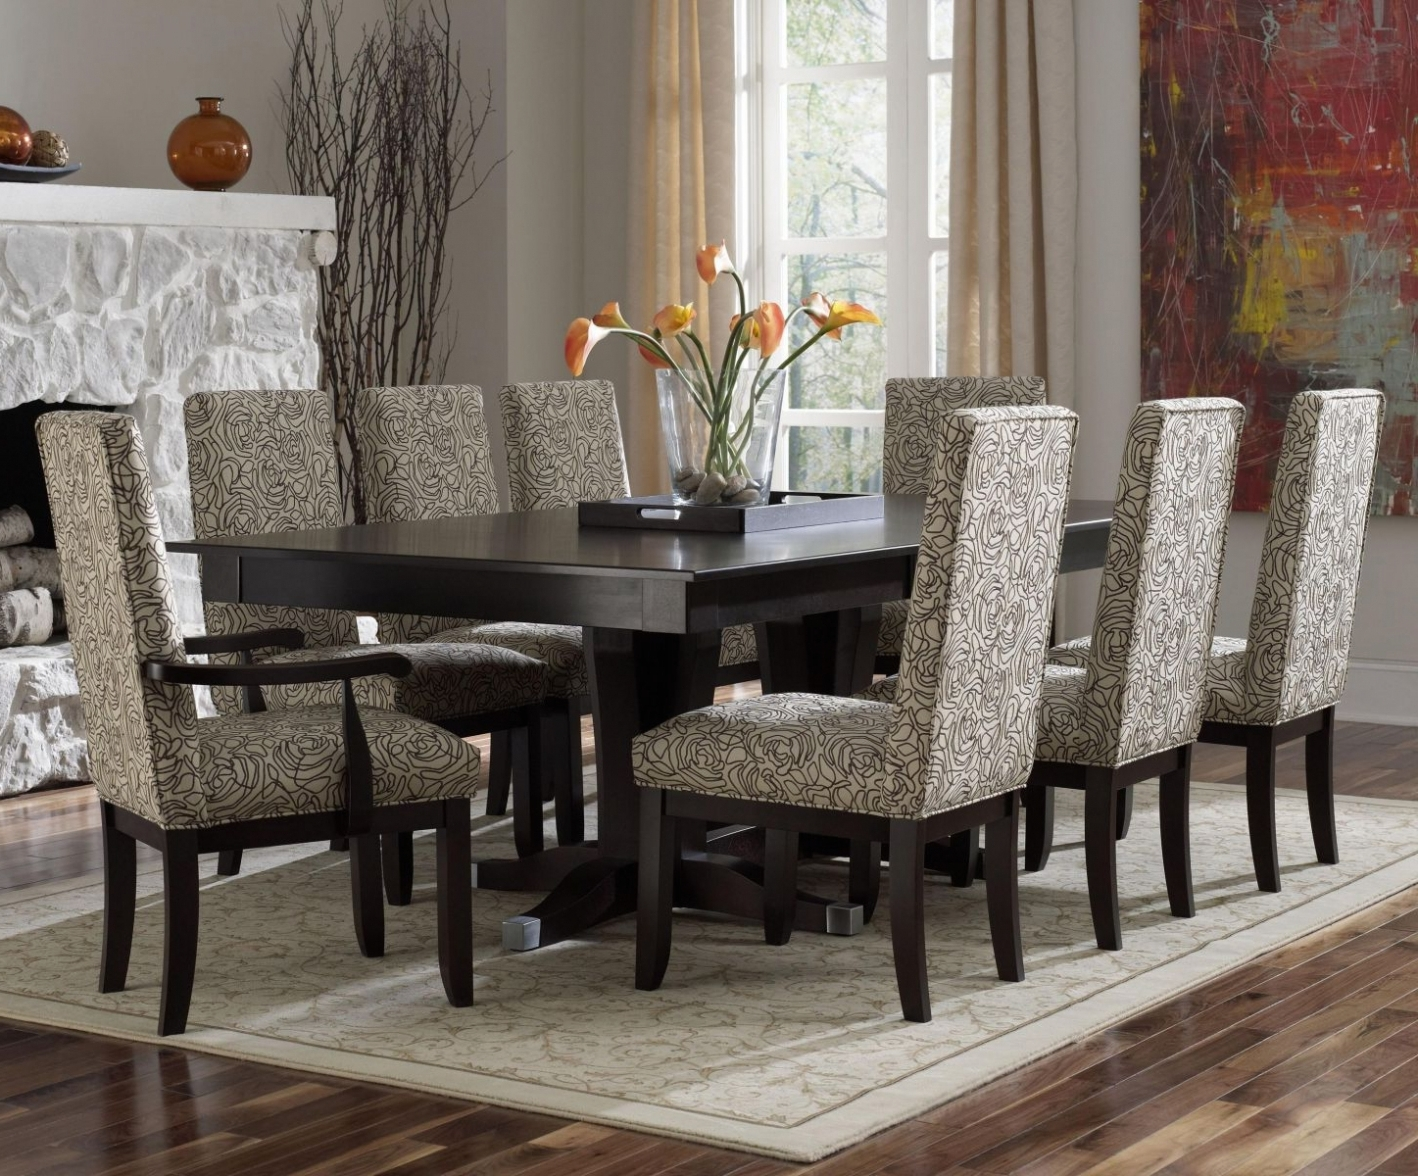 Glasgow Dining Sets Throughout Well Known Furnitures: Dining Room Furniture : Dining Room Sets Dining Sets (View 8 of 25)